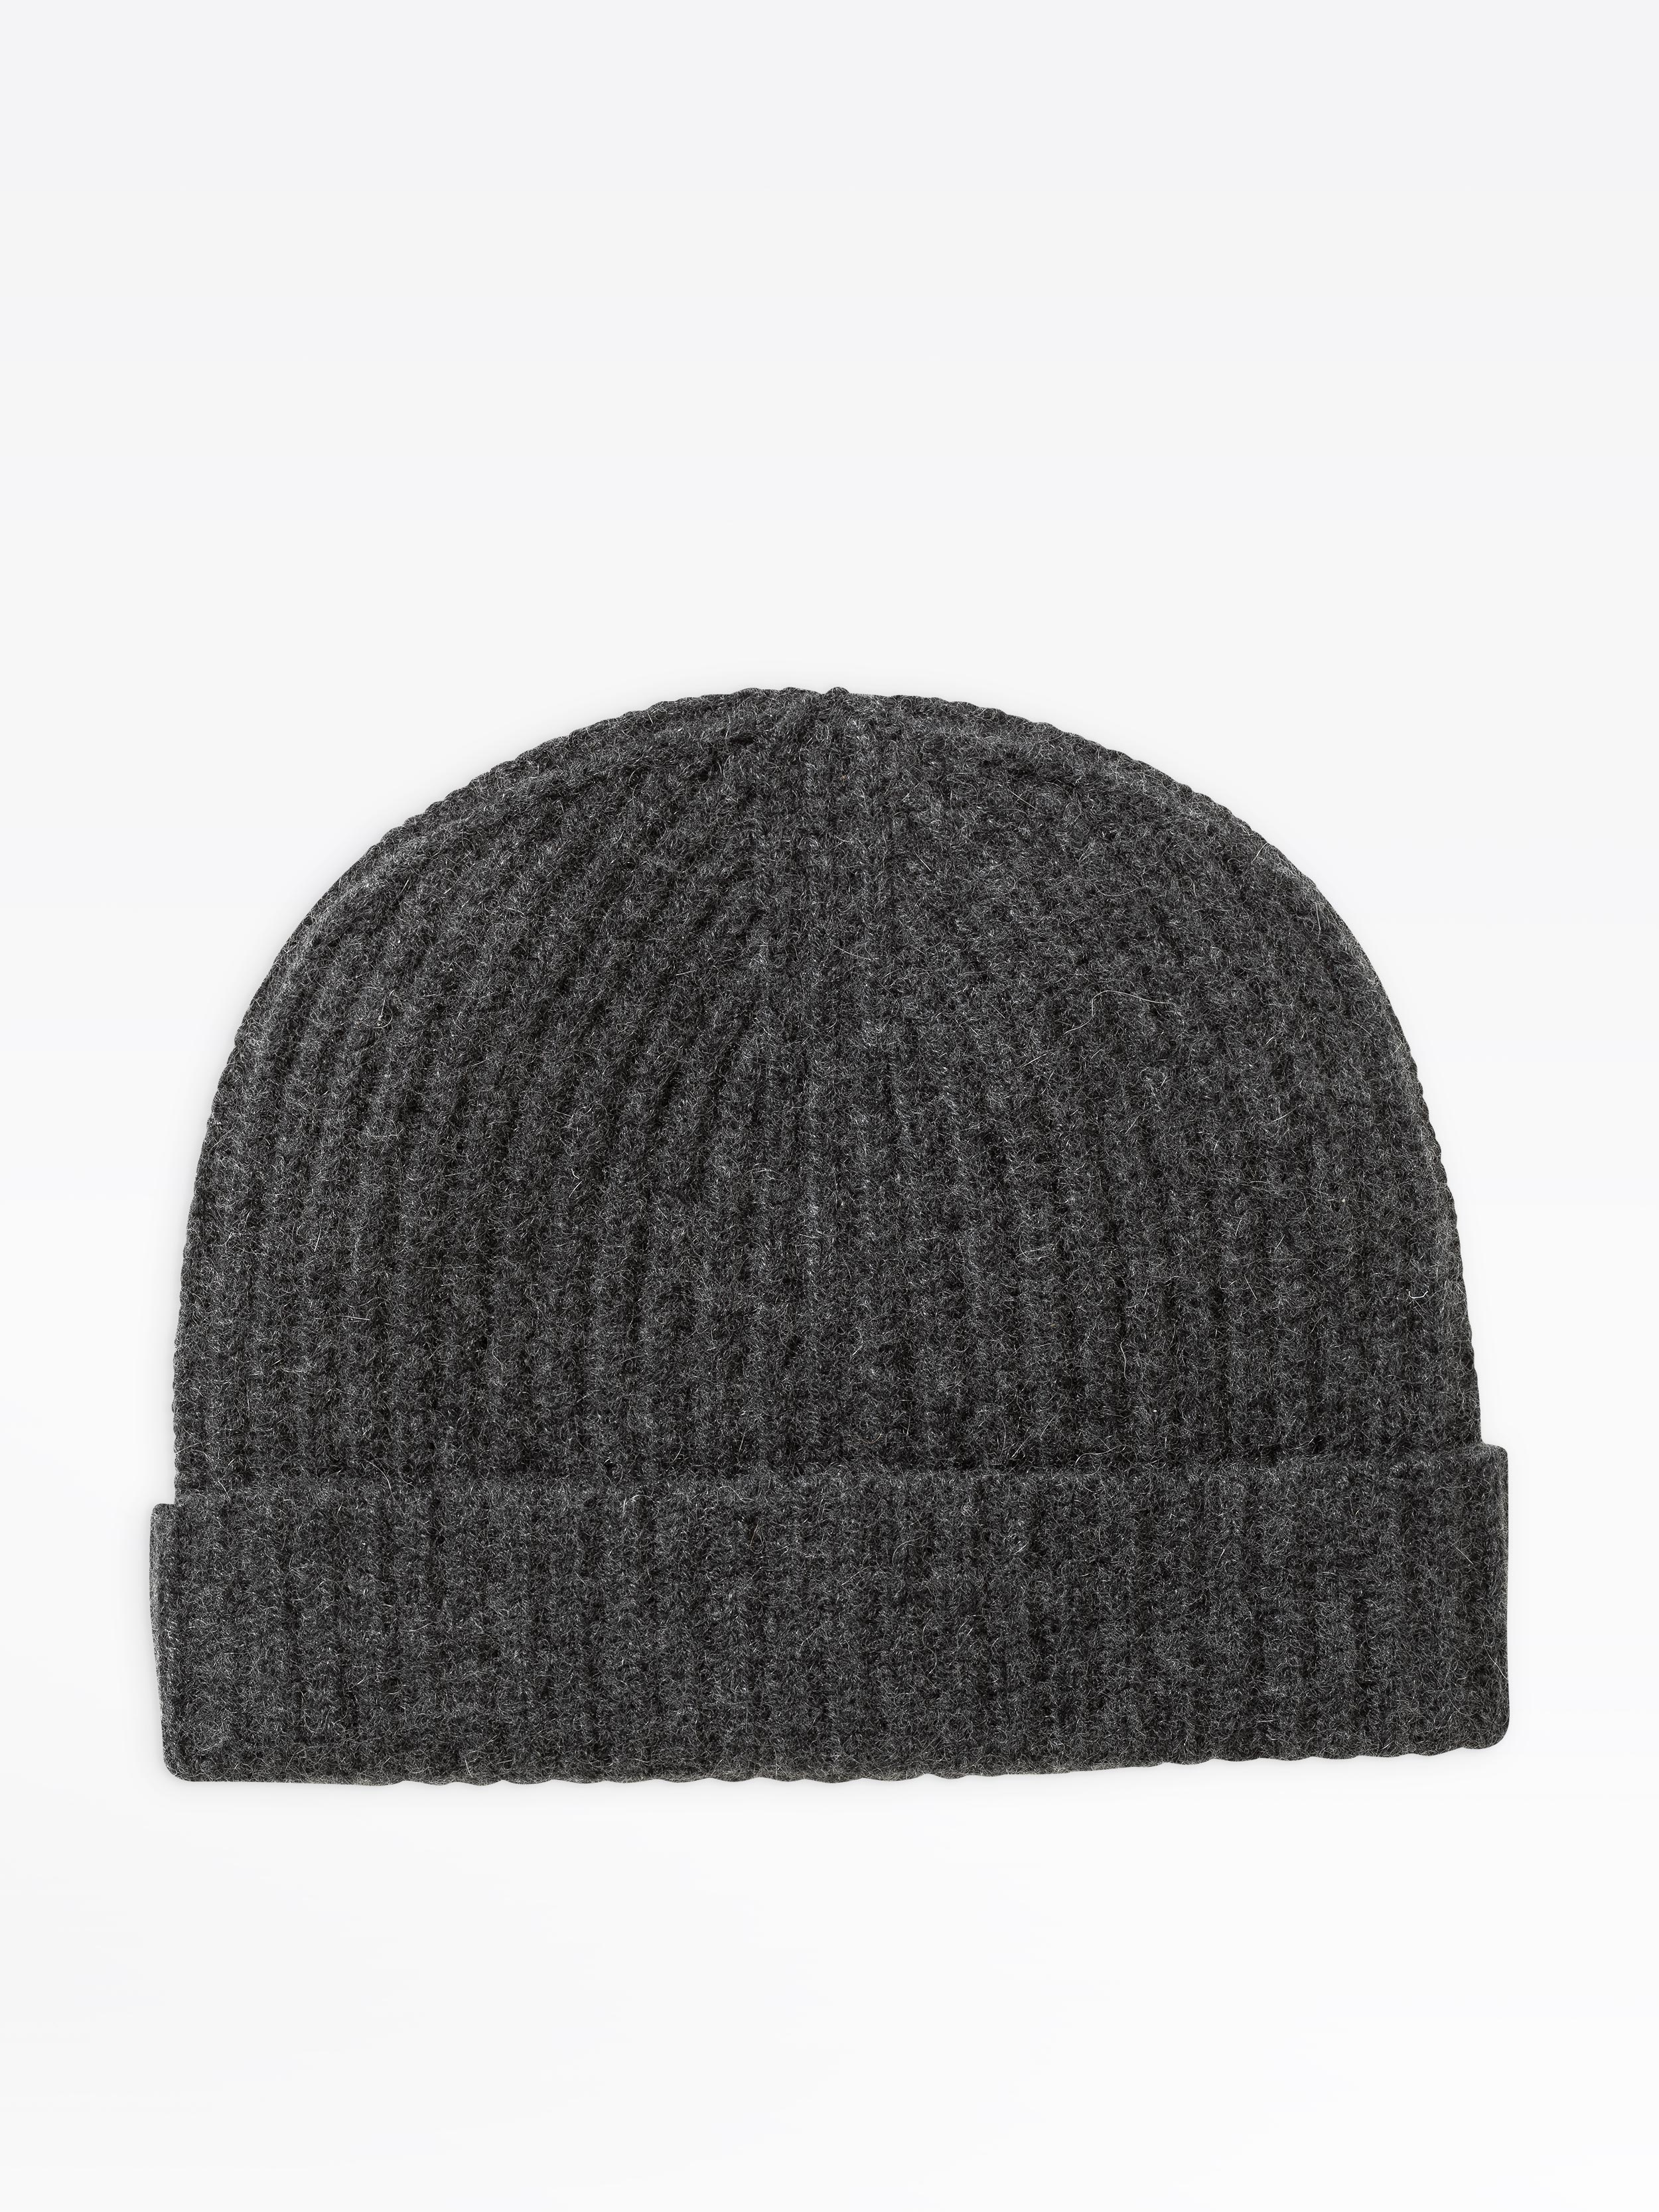 35e8670eb97223 ... dark grey cashmere alexi beanie hat. Loading... Image not available.